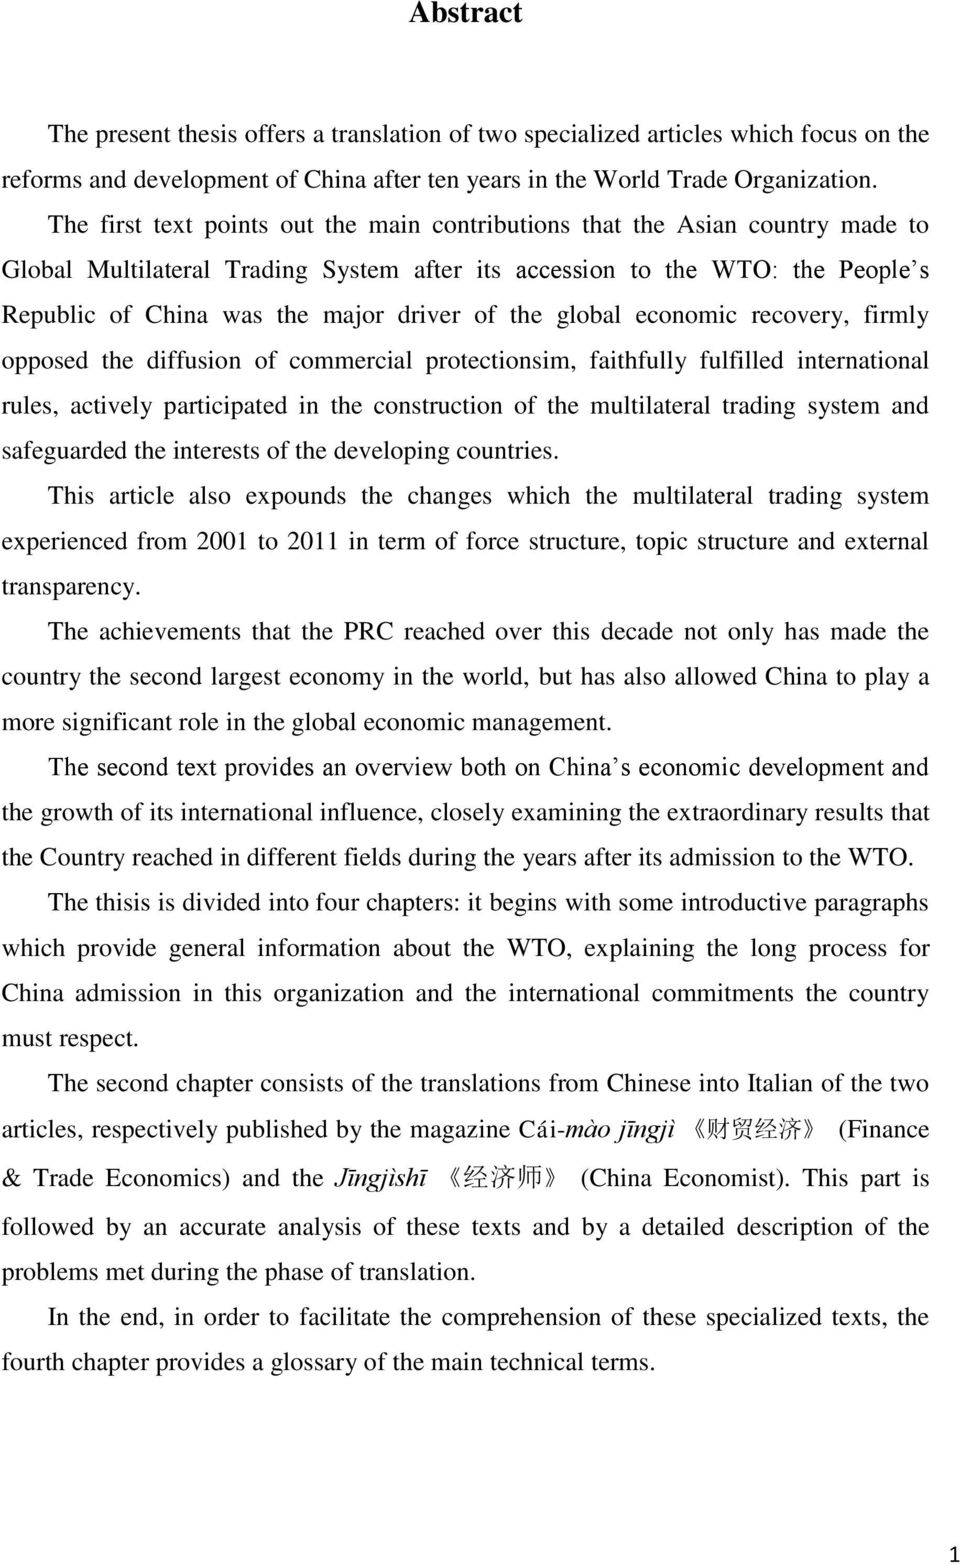 of the global economic recovery, firmly opposed the diffusion of commercial protectionsim, faithfully fulfilled international rules, actively participated in the construction of the multilateral